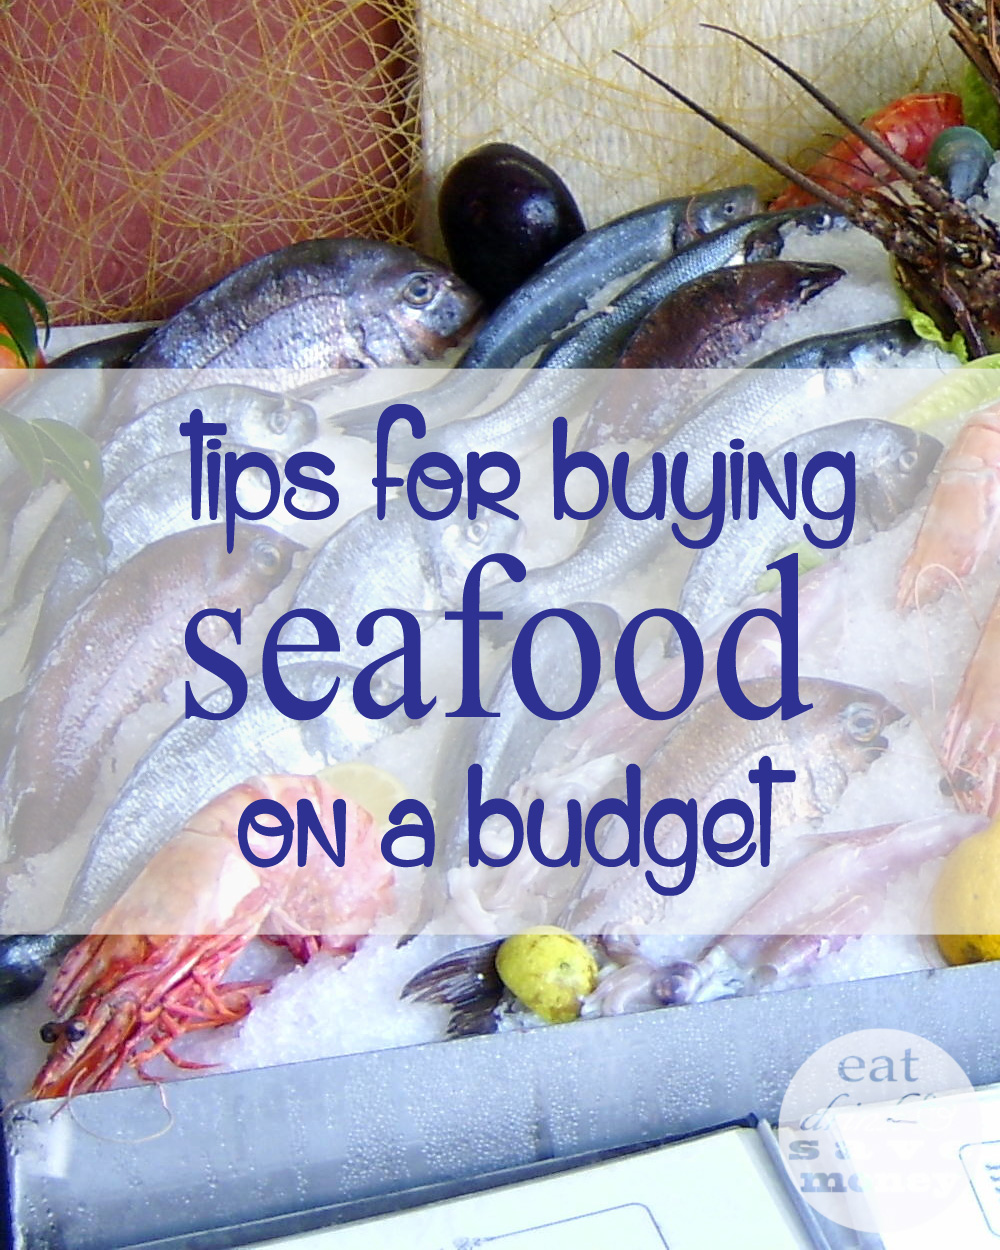 Tips for buying seafood on a budget